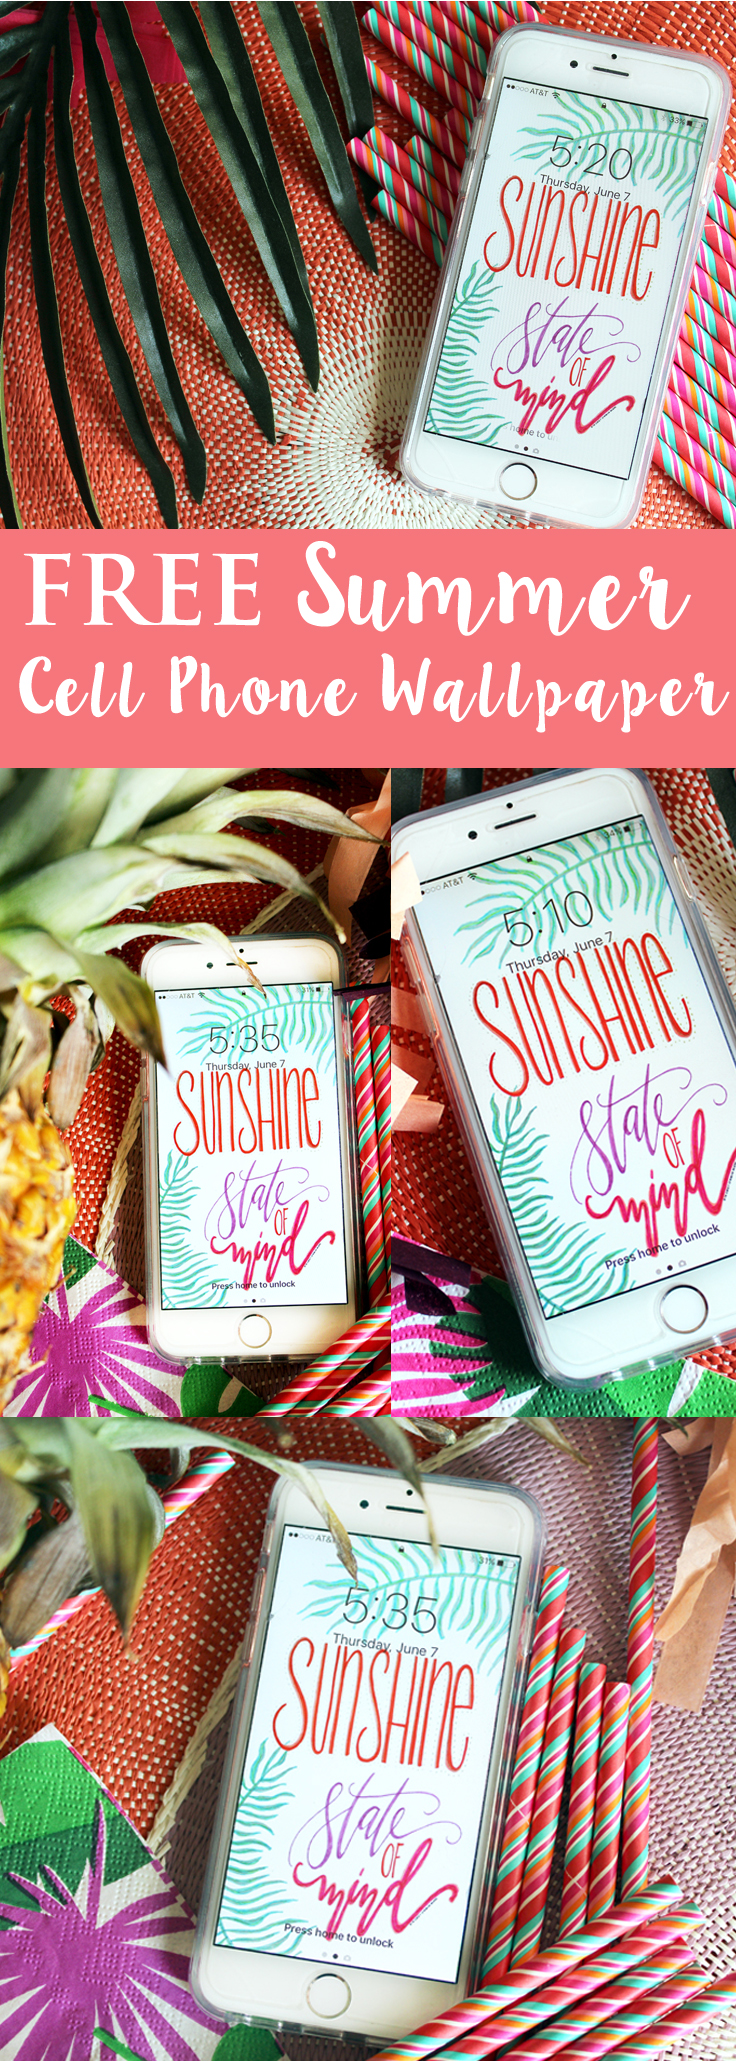 Summer phone wallpaper pinterest